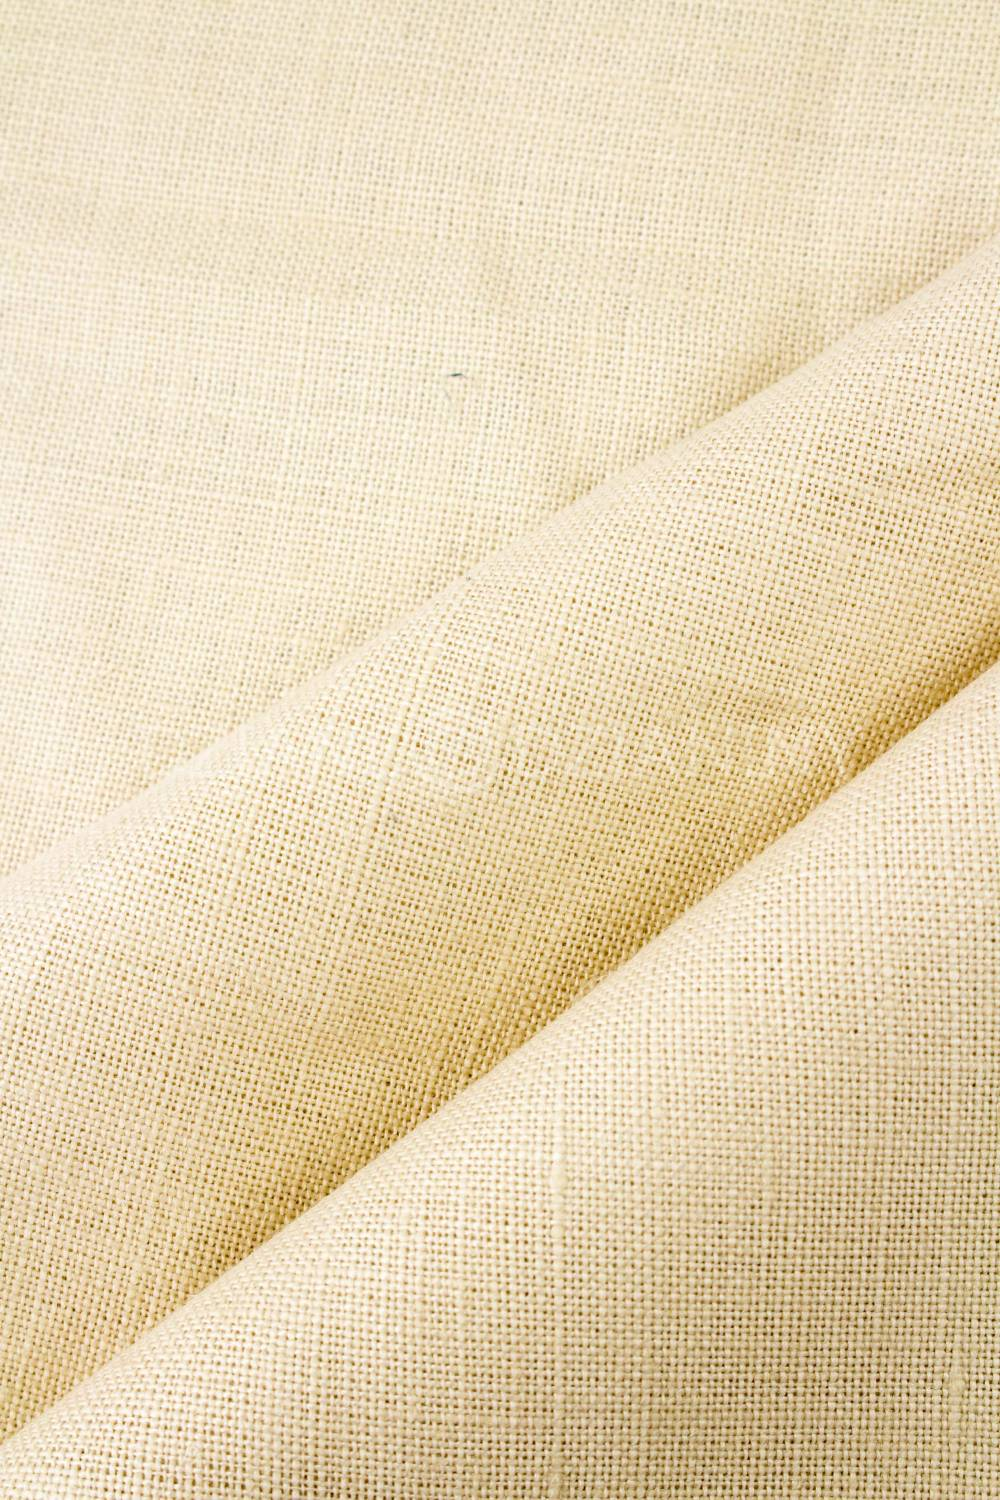 Fabric - Linen - Ecru/Natural - 115 cm - 225 g/m2